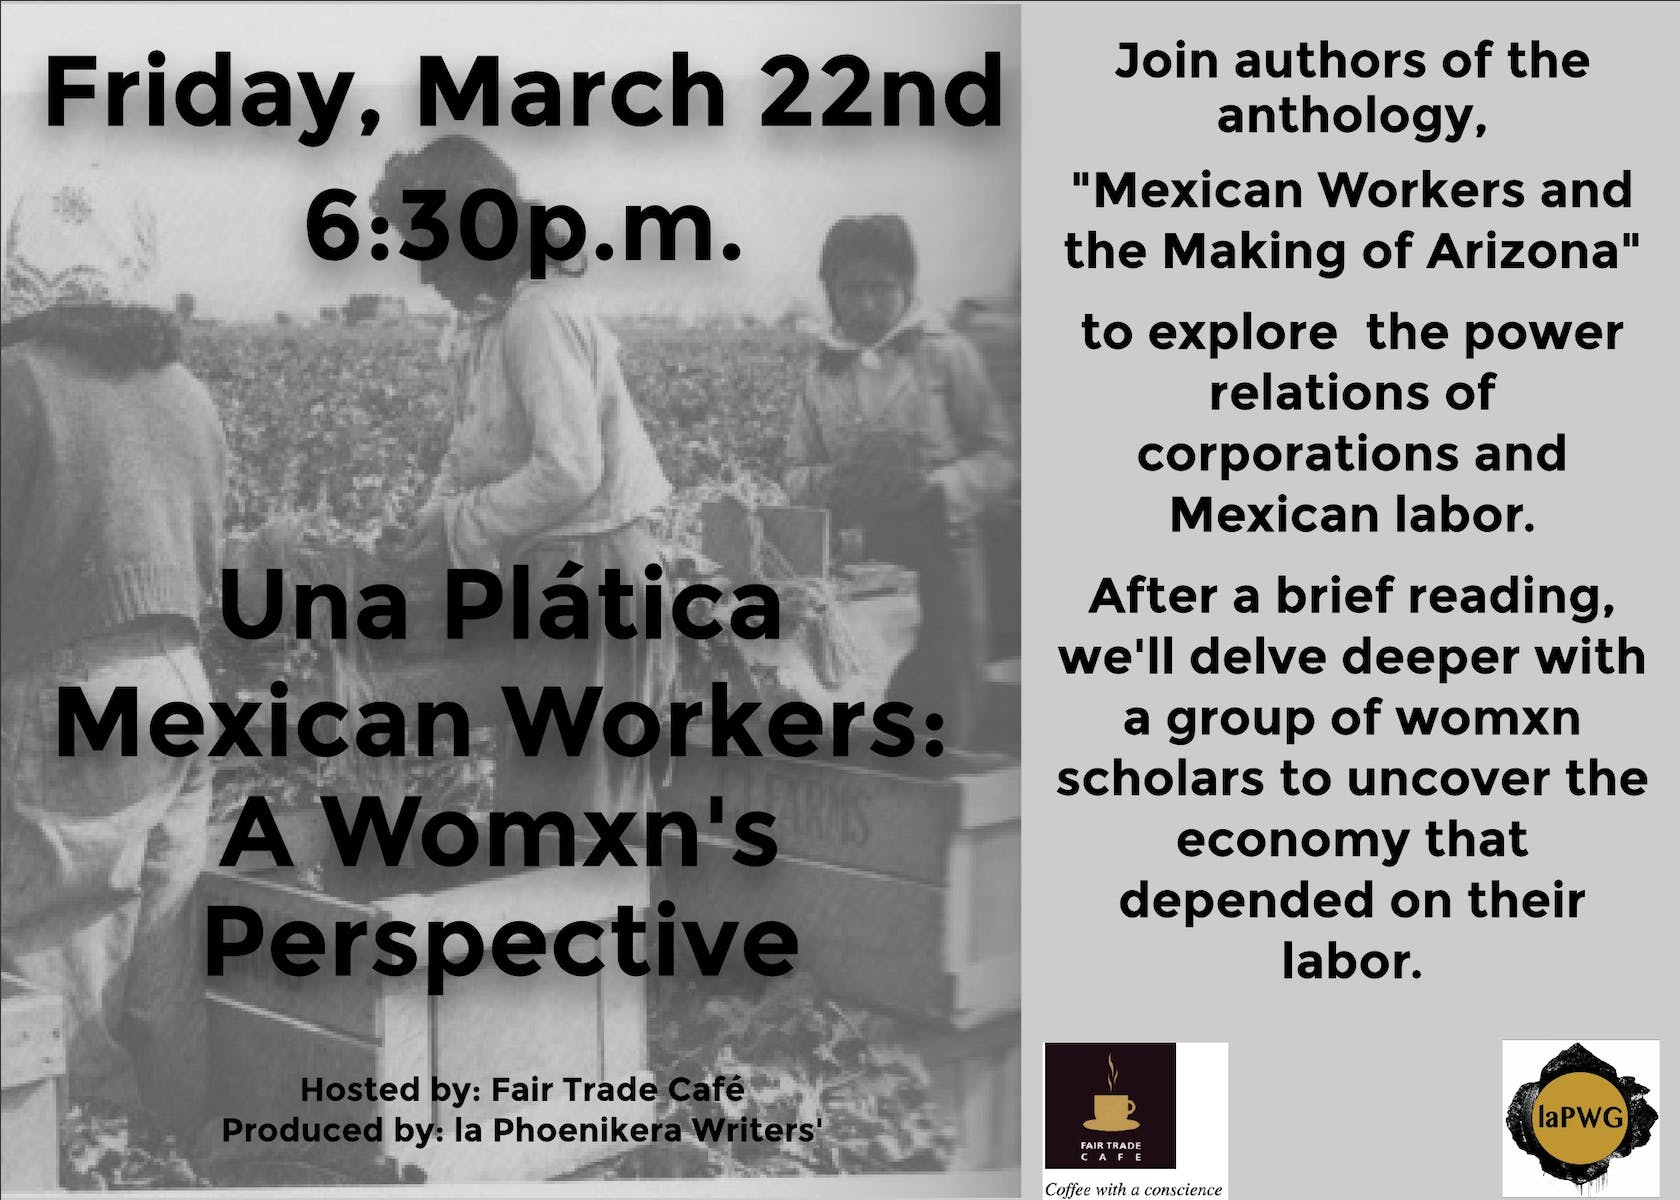 Una Plática - Mexican Workers, A Womxn's Perspective